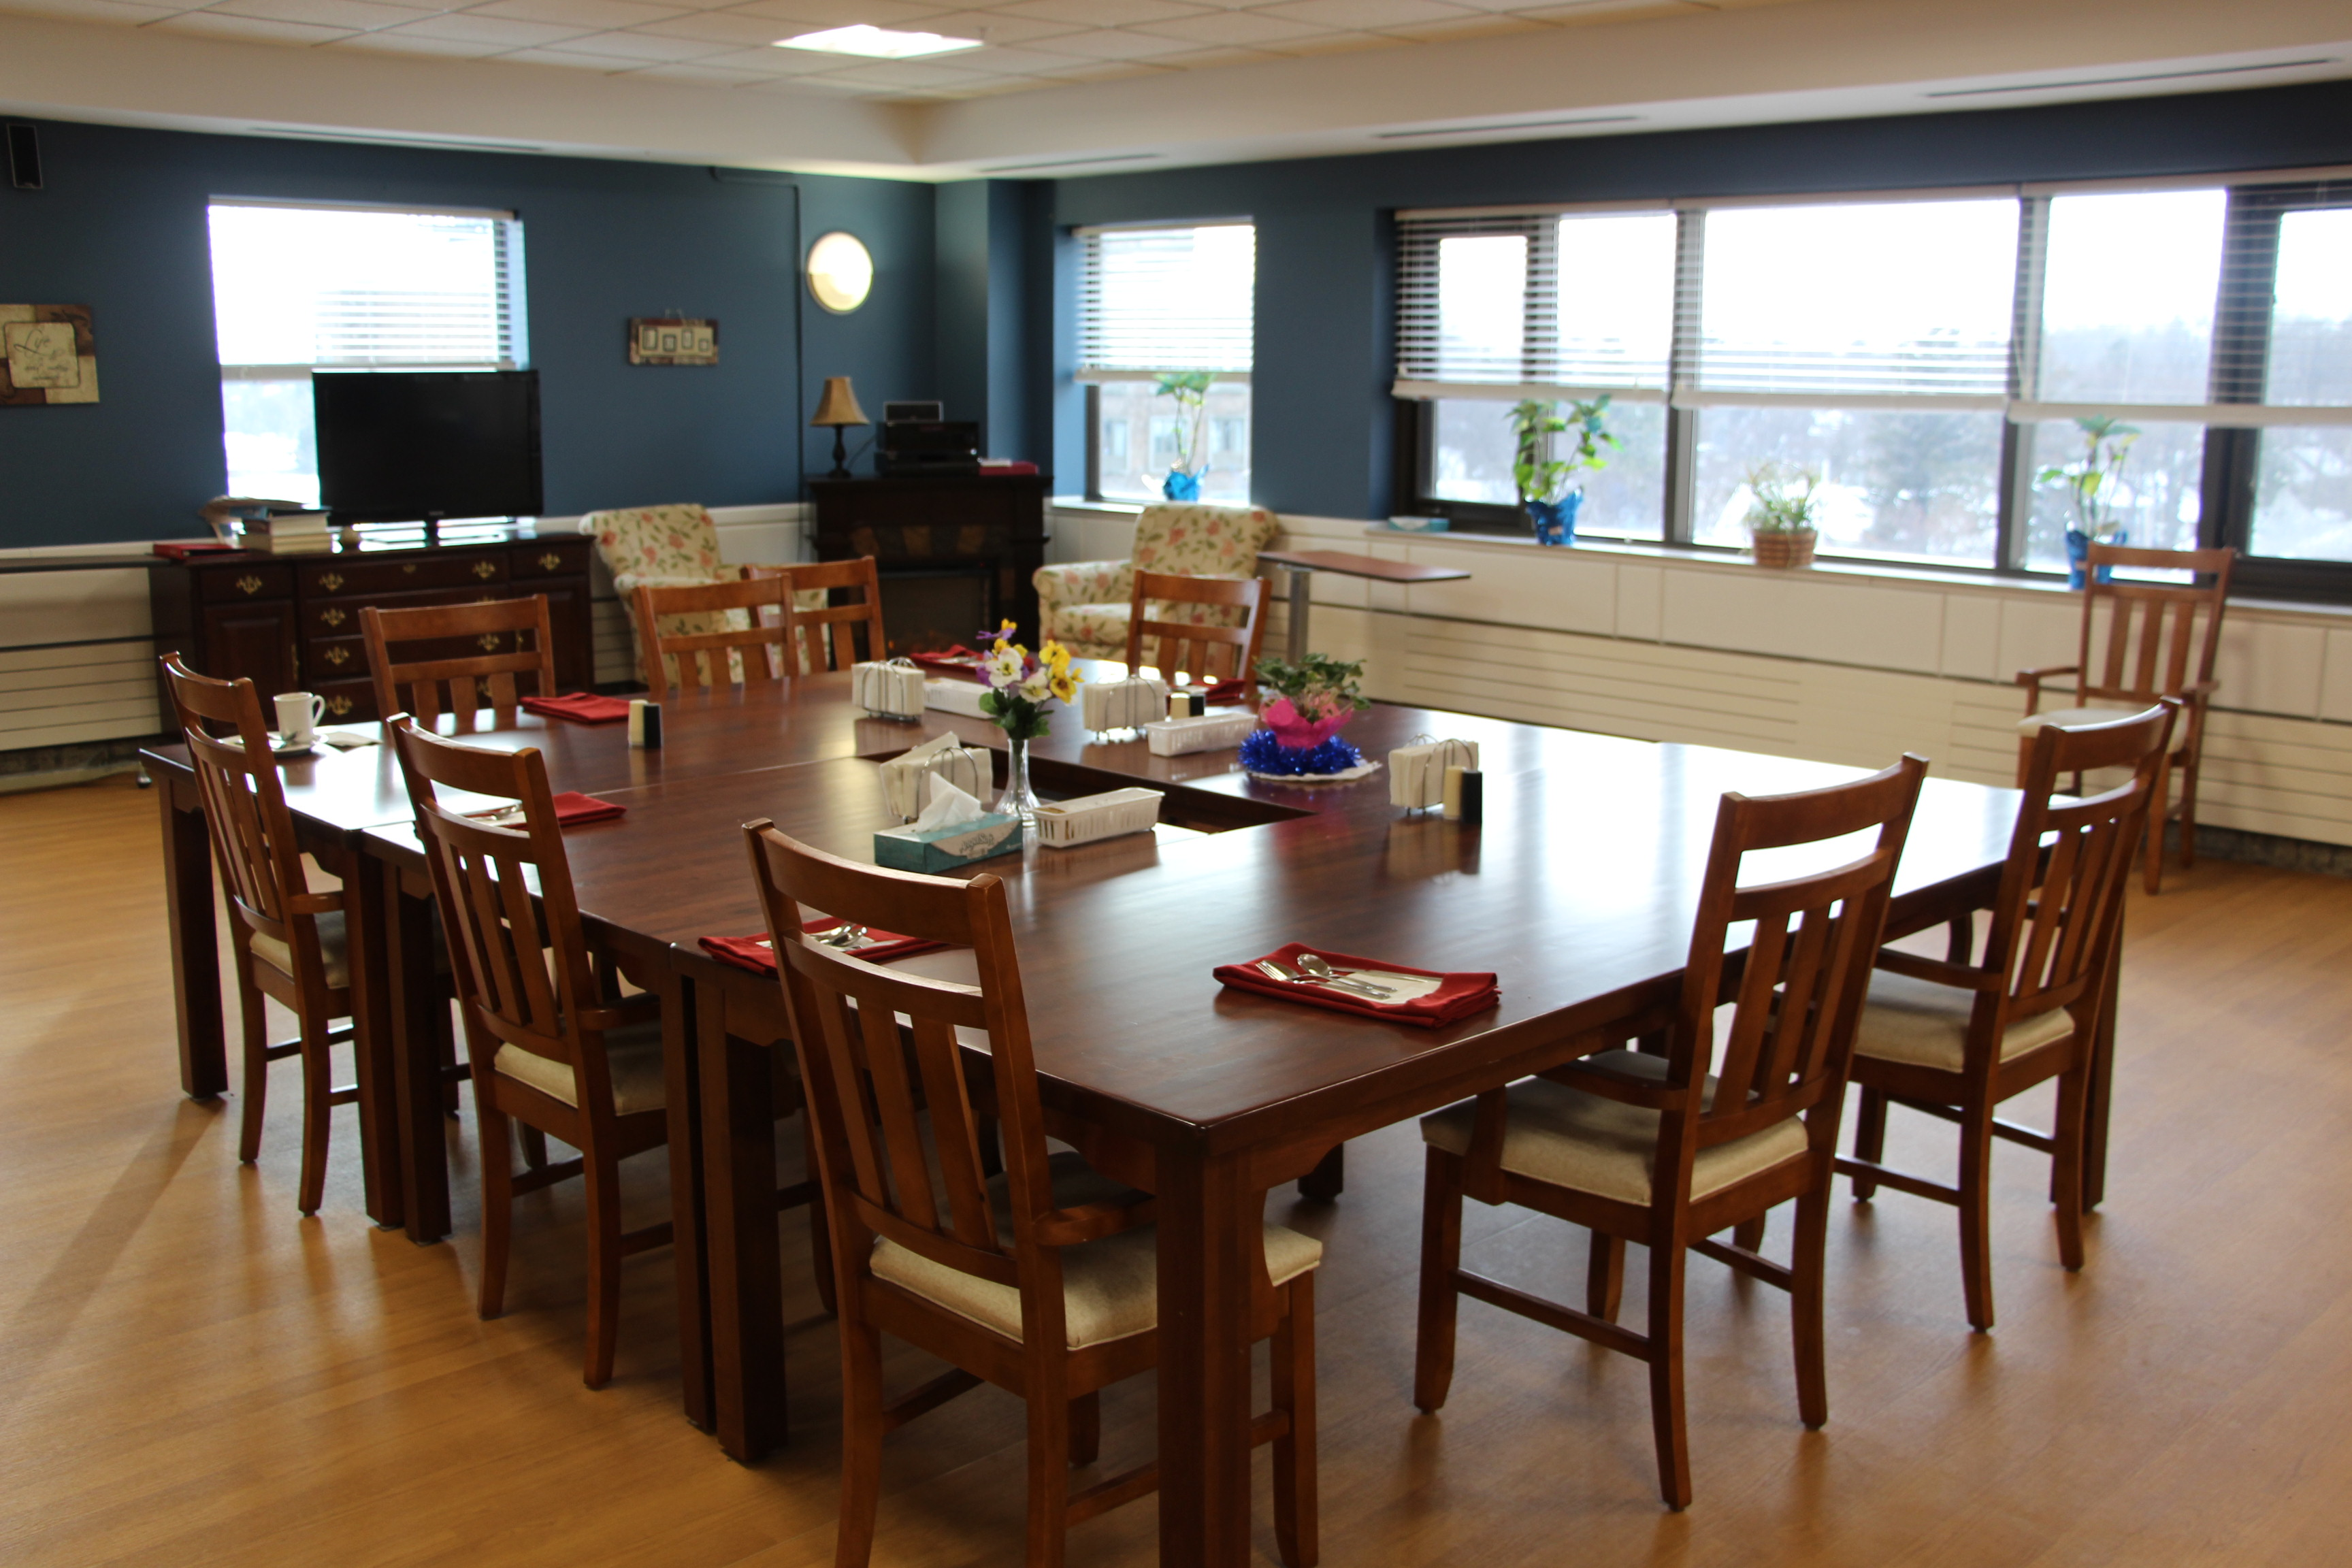 Dr eleanor barbera my better nursing home for Nursing home dining room ideas